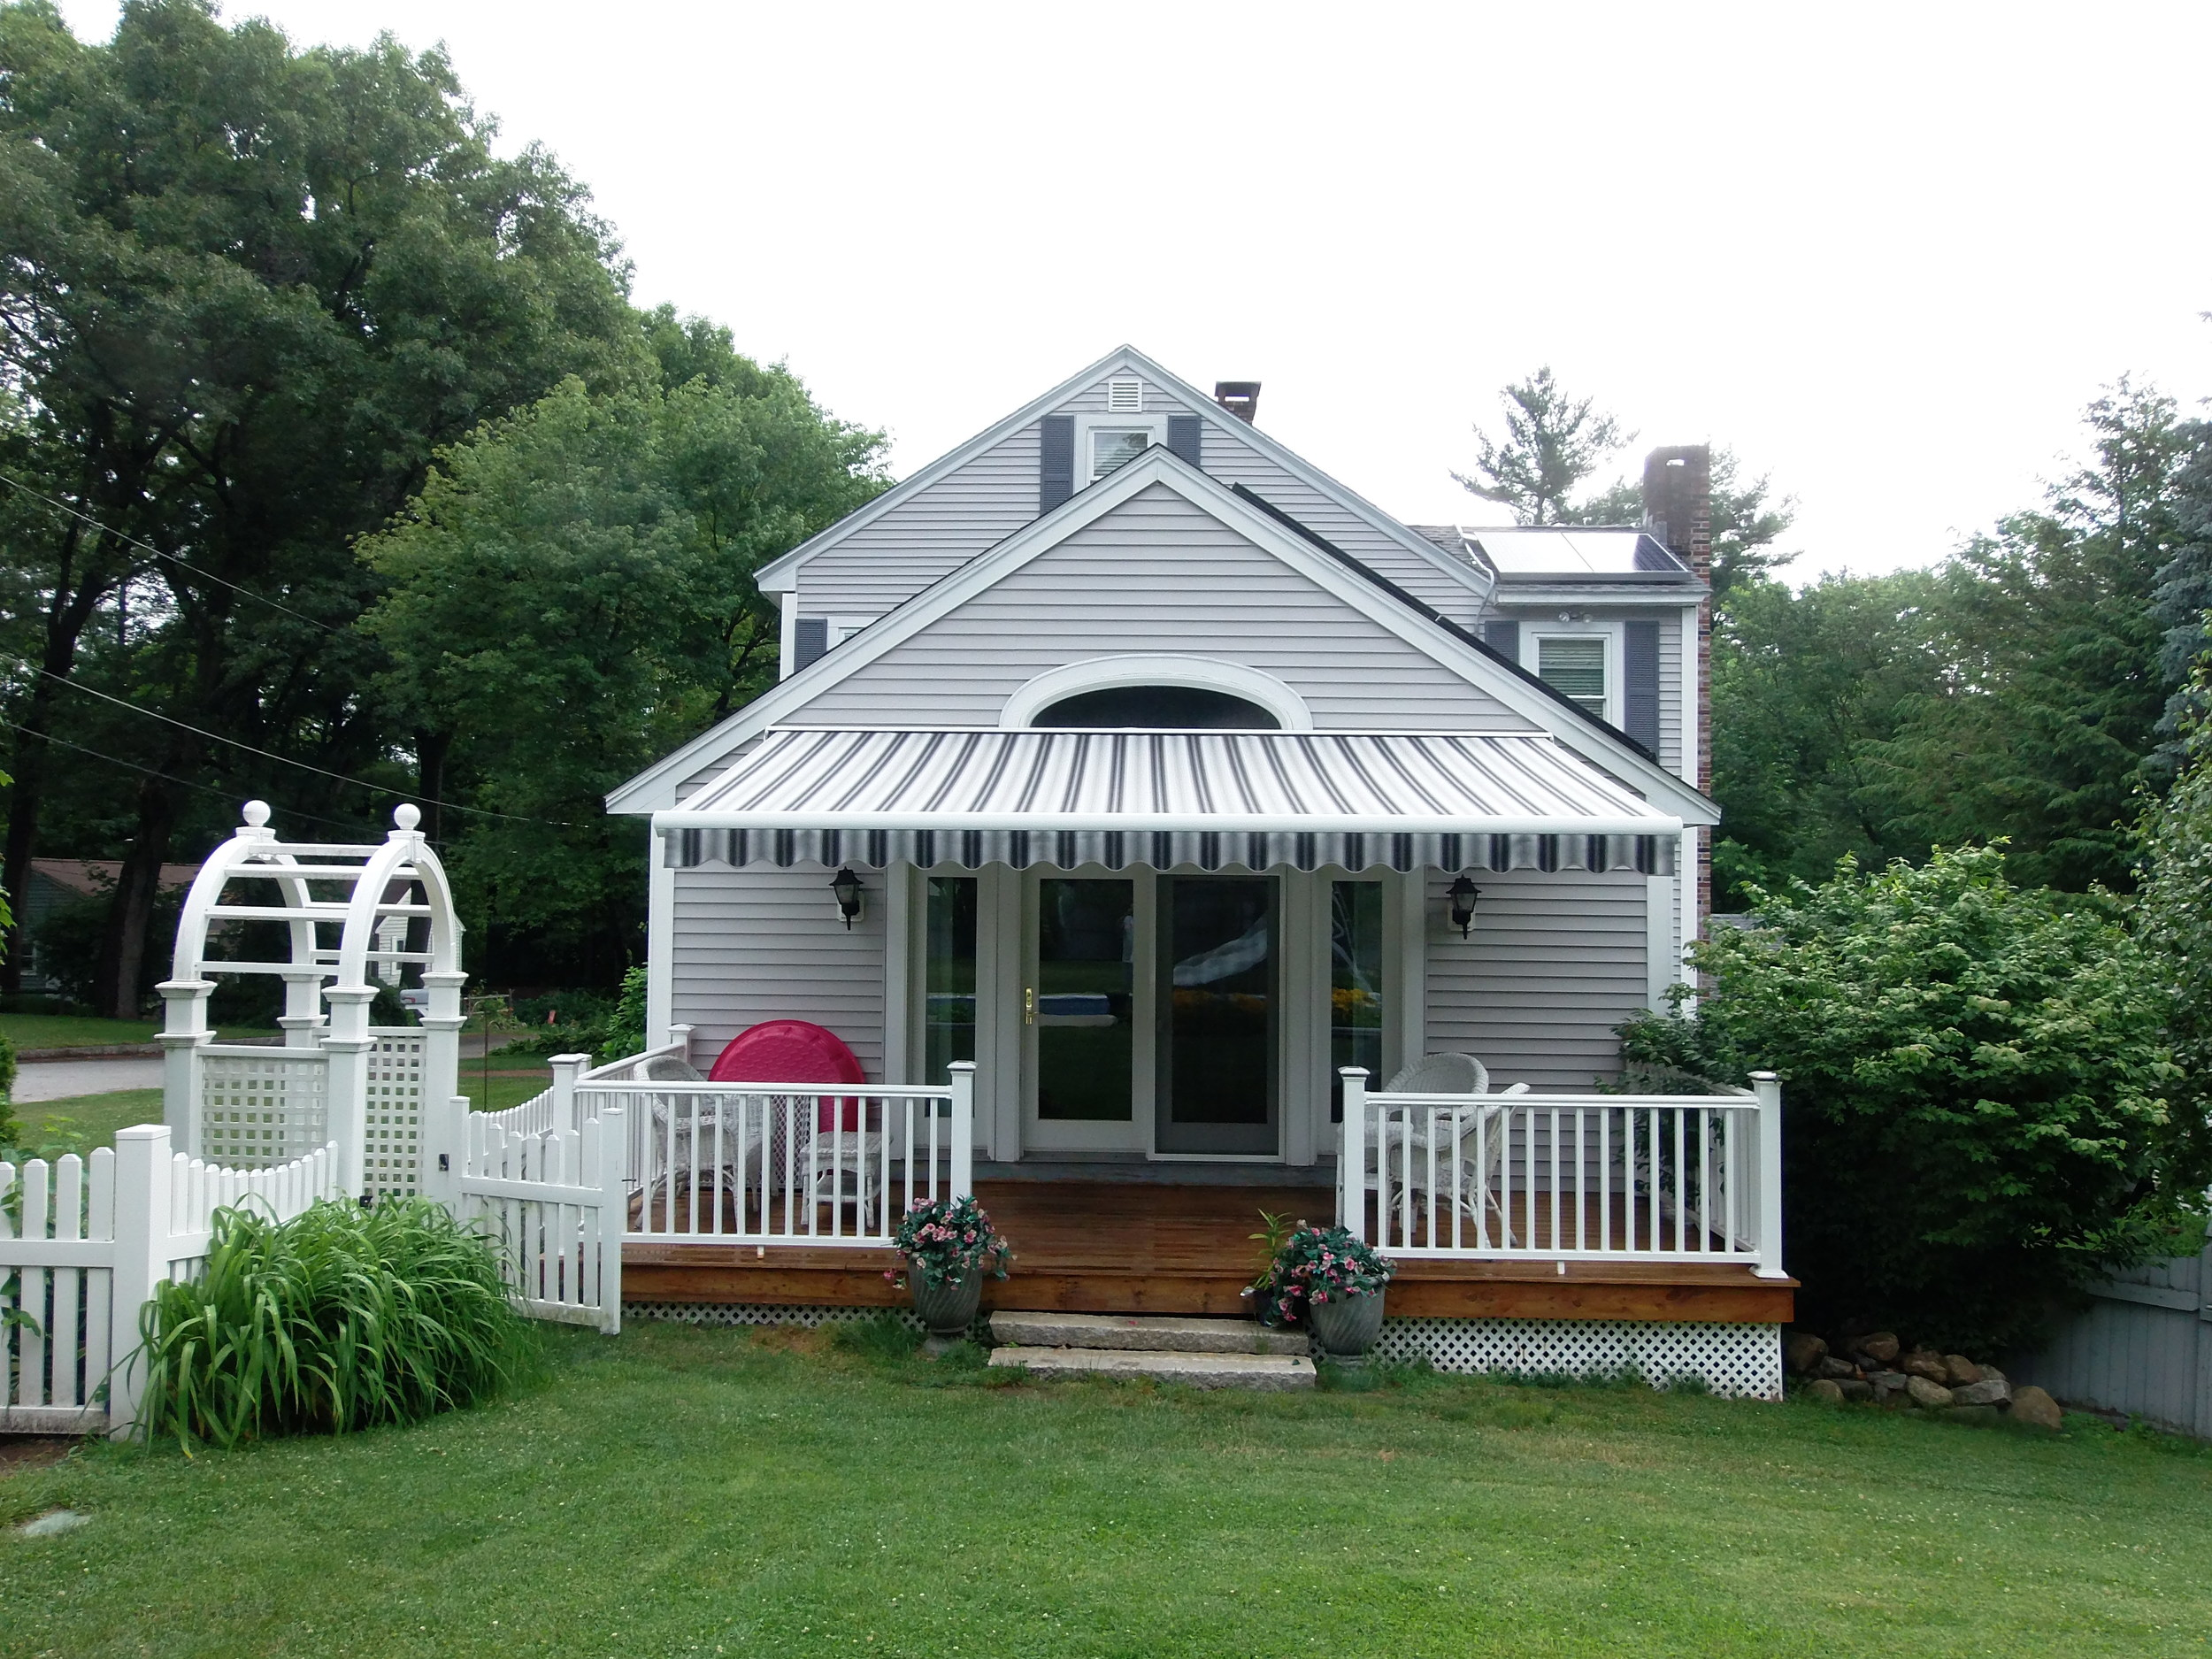 Chelmsford, MA- Retractable Awning